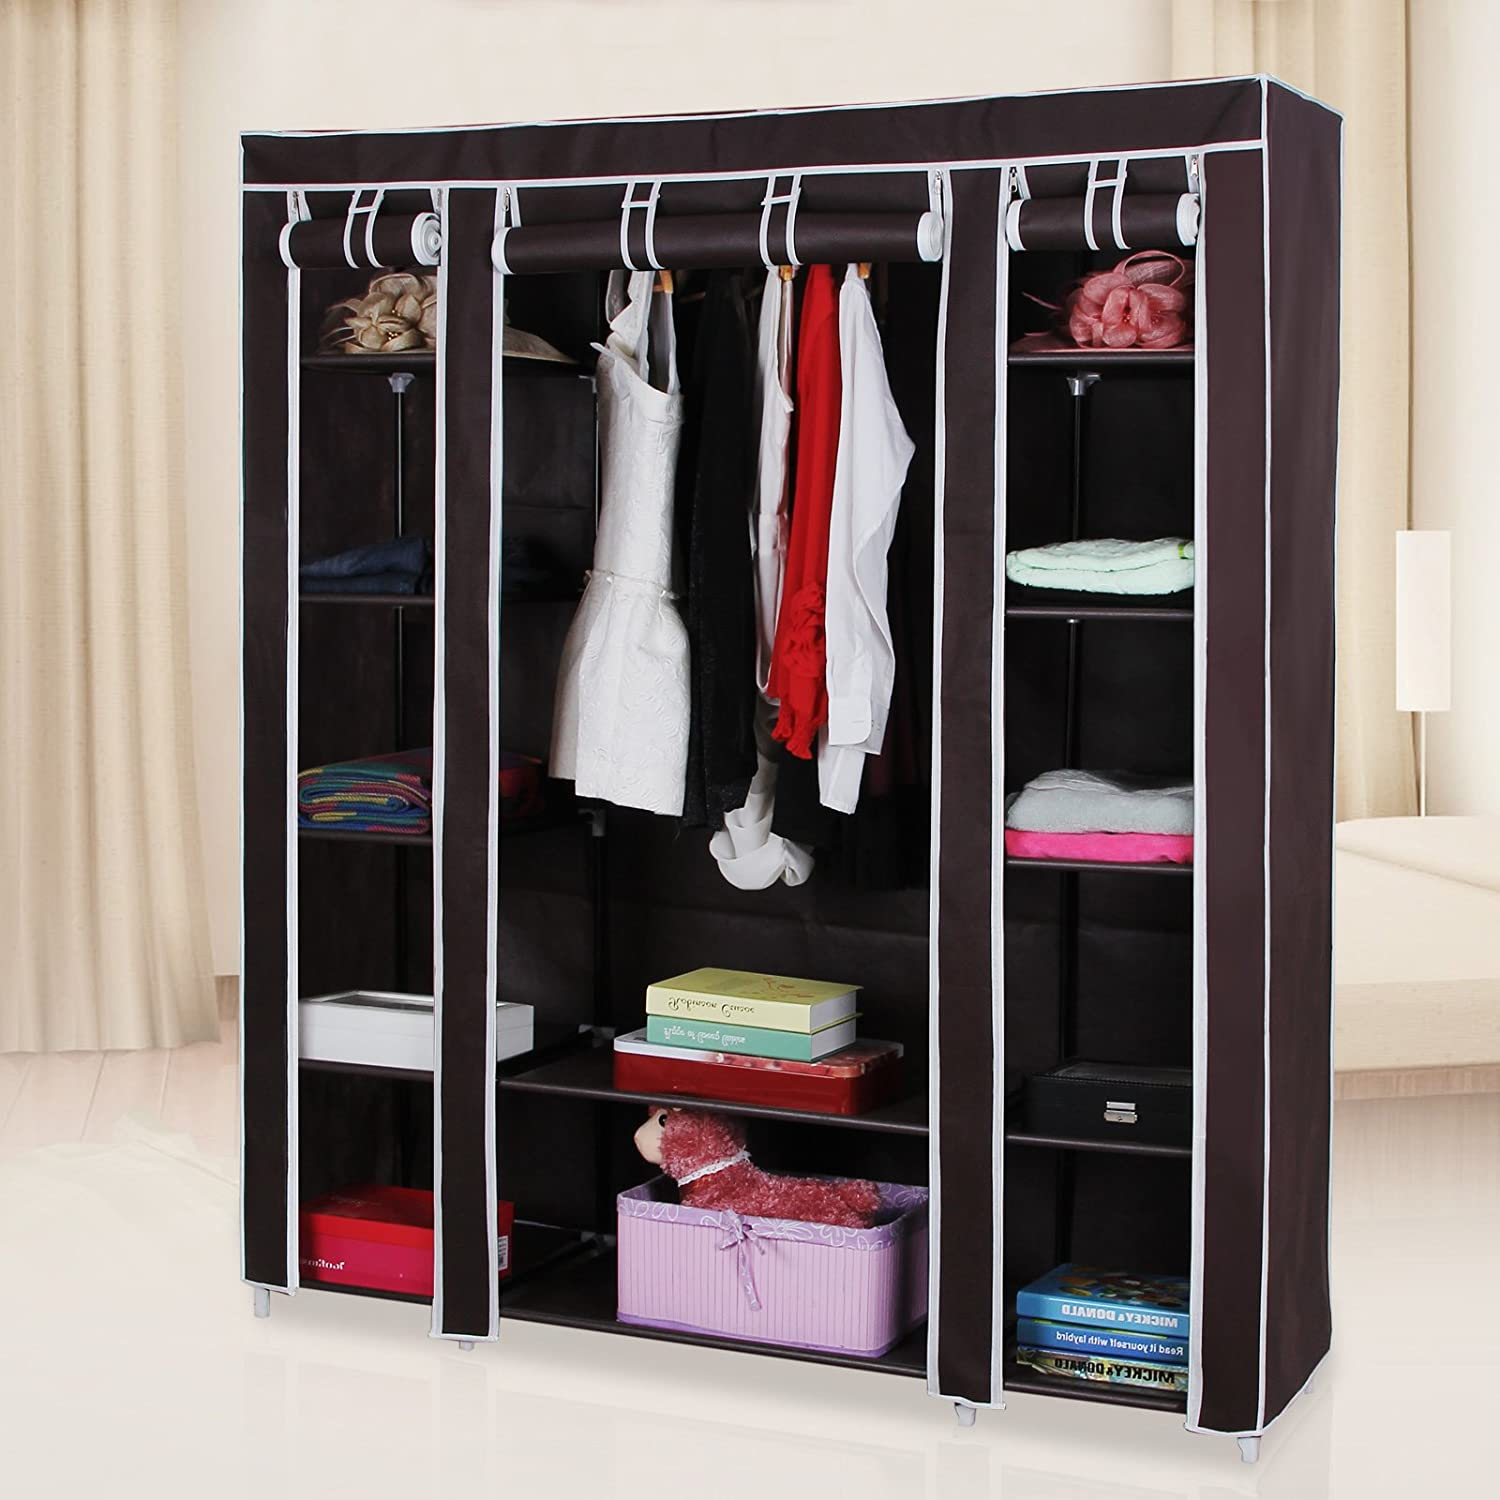 Portable Clothes Closet Wardrobe Roselawnlutheran